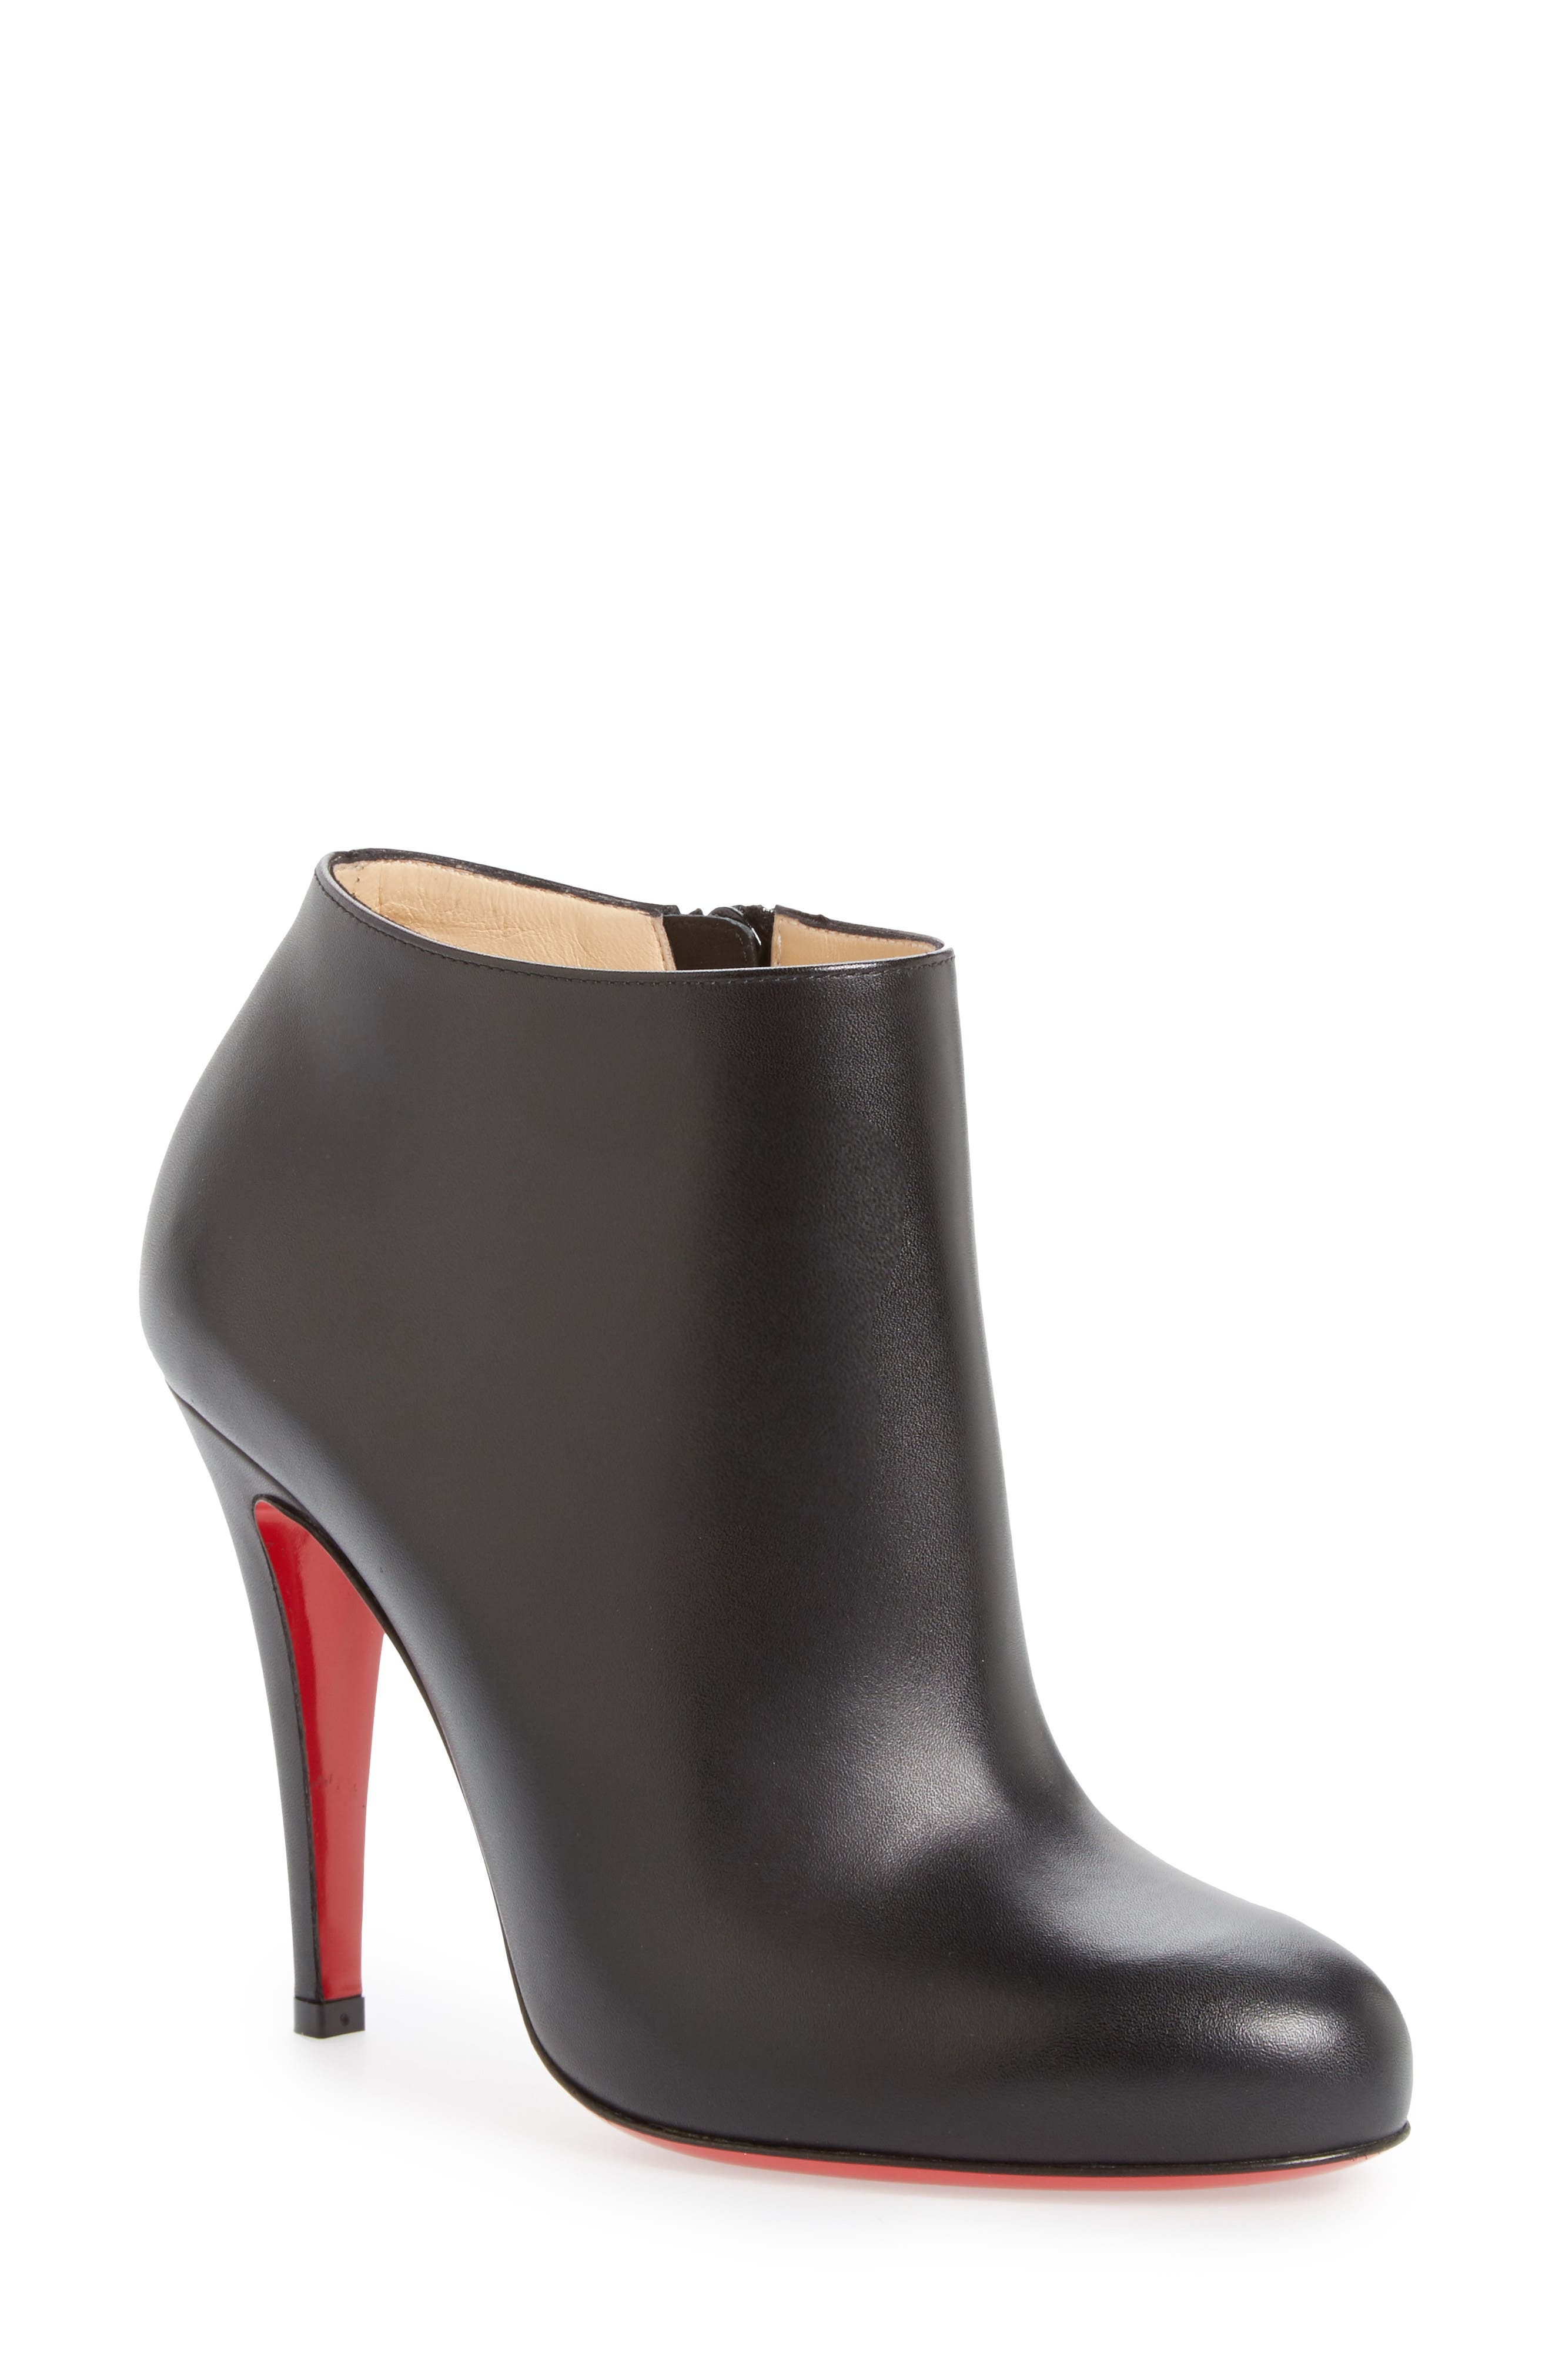 Main Image - Christian Louboutin Belle Round Toe Bootie